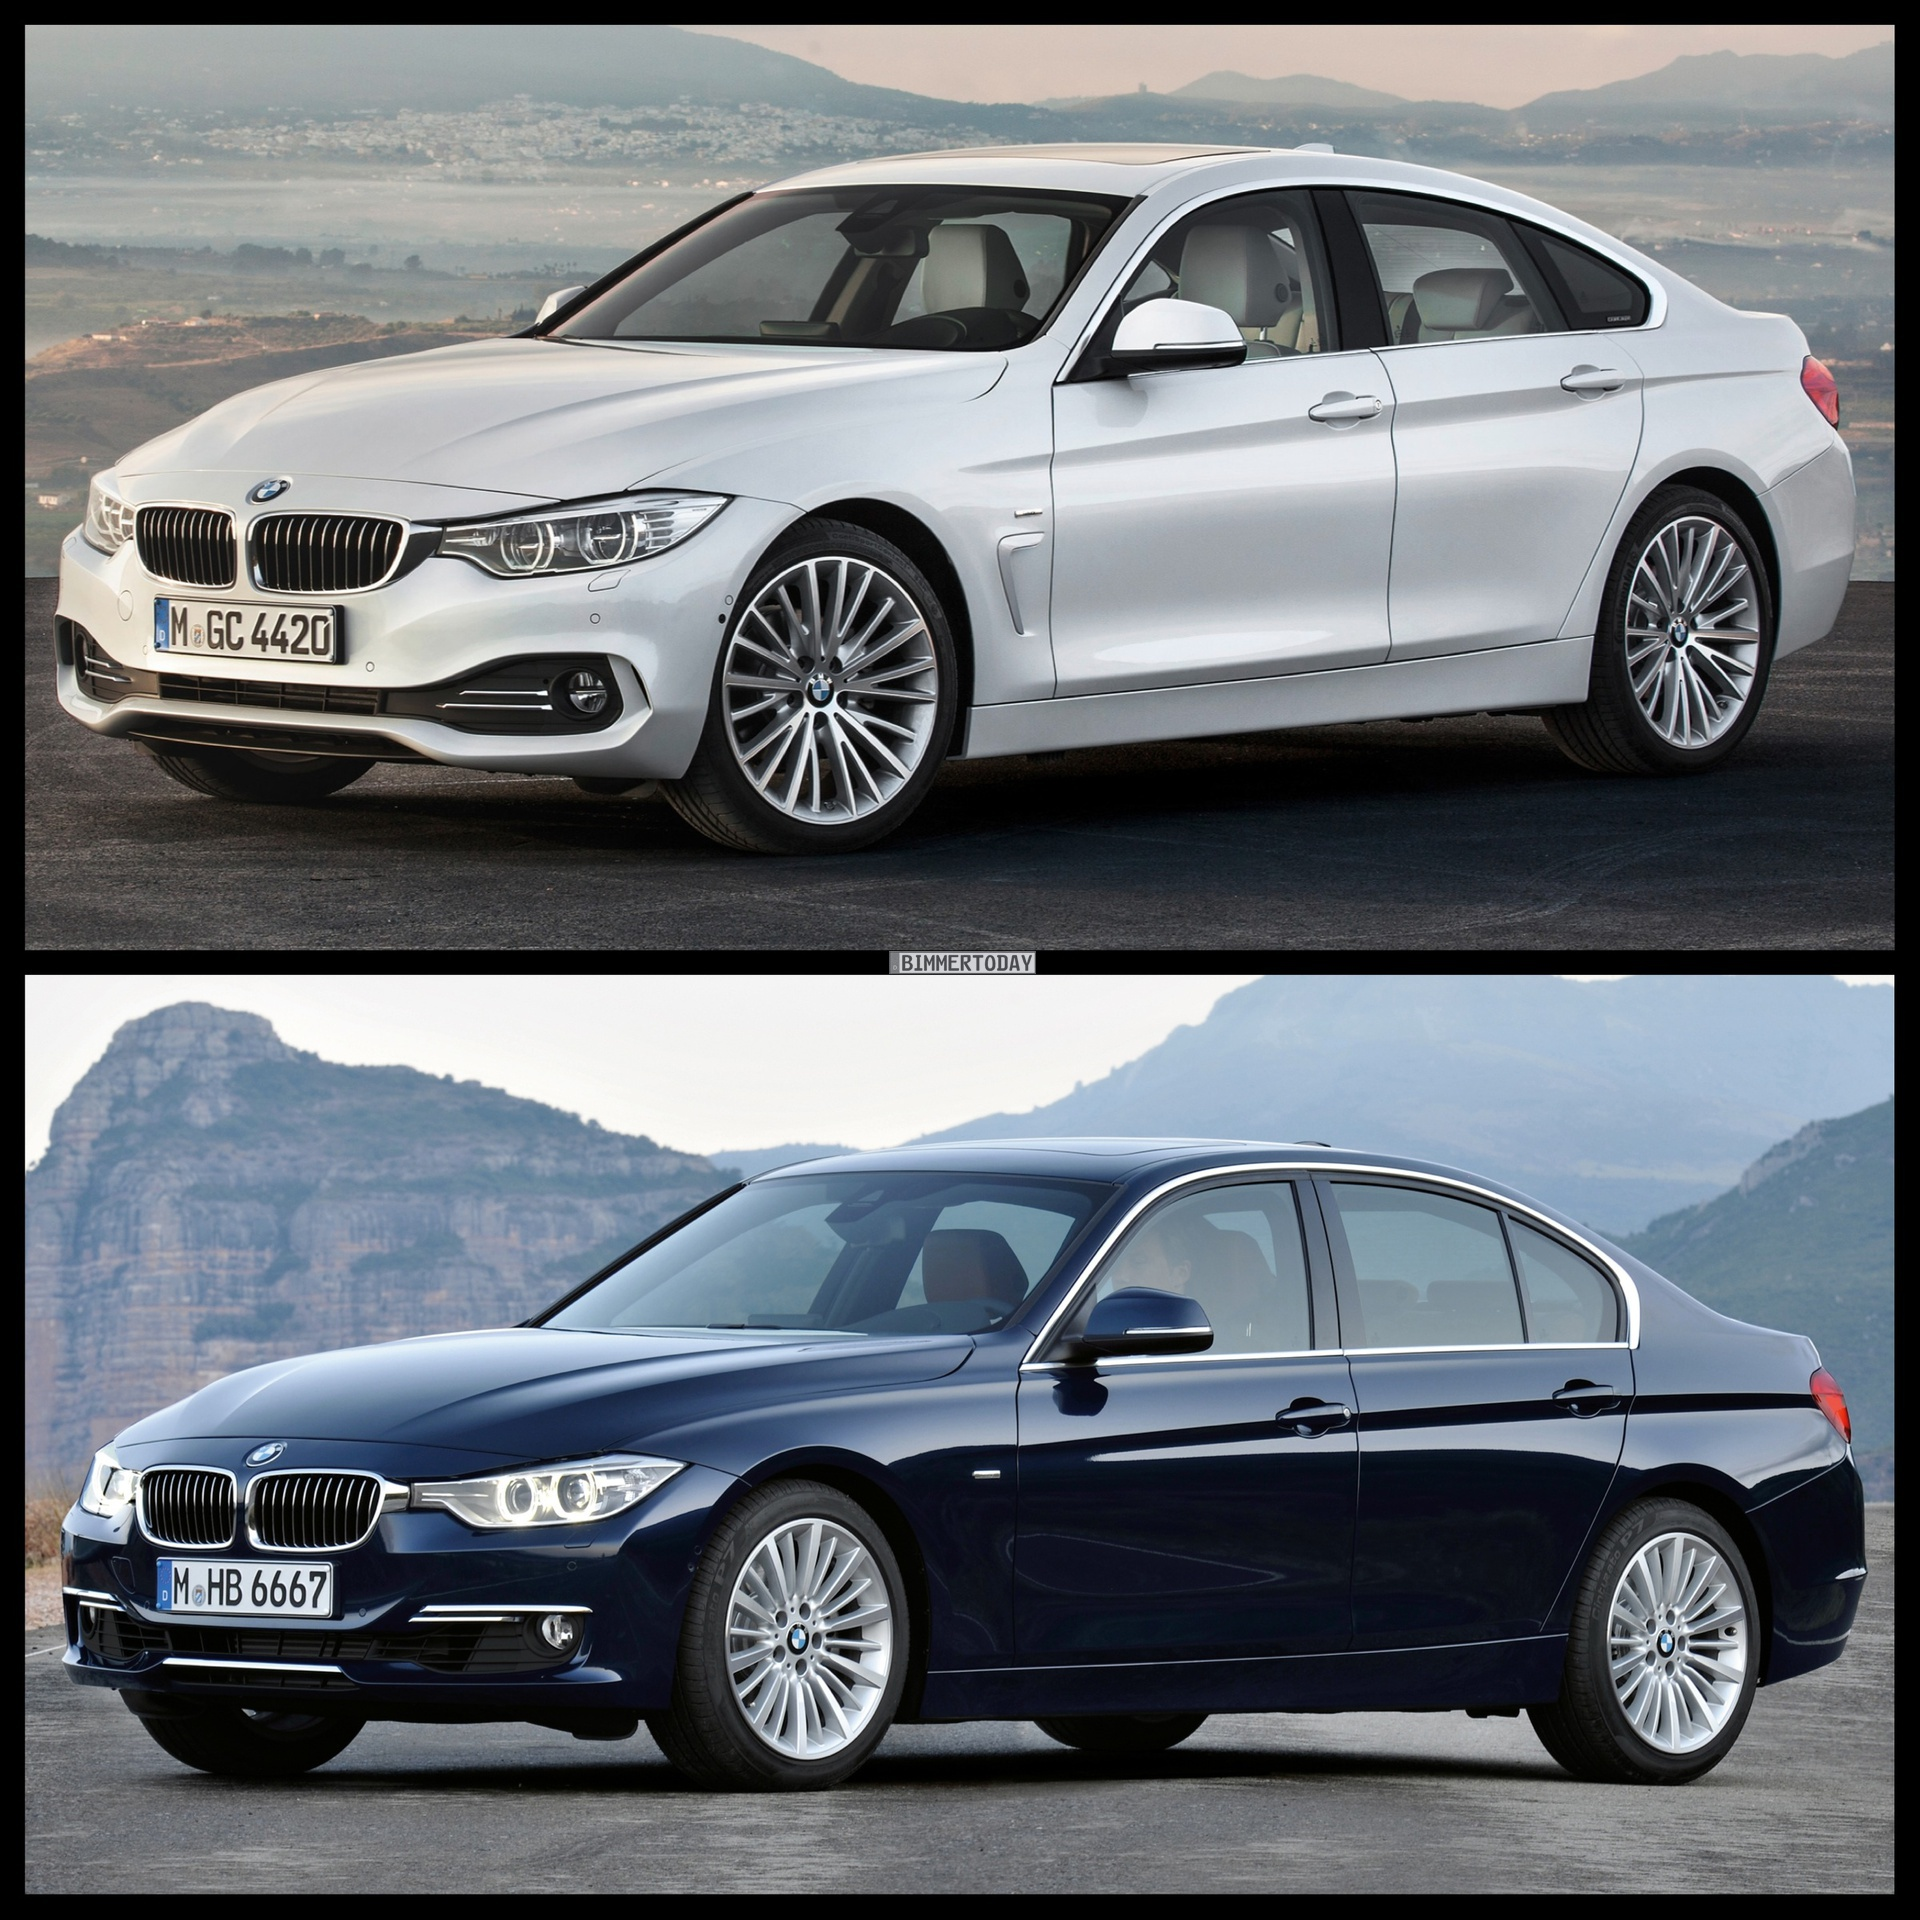 Bmw X7: BMW 4 Series Gran Coupe Vs. BMW 3 Series Sedan